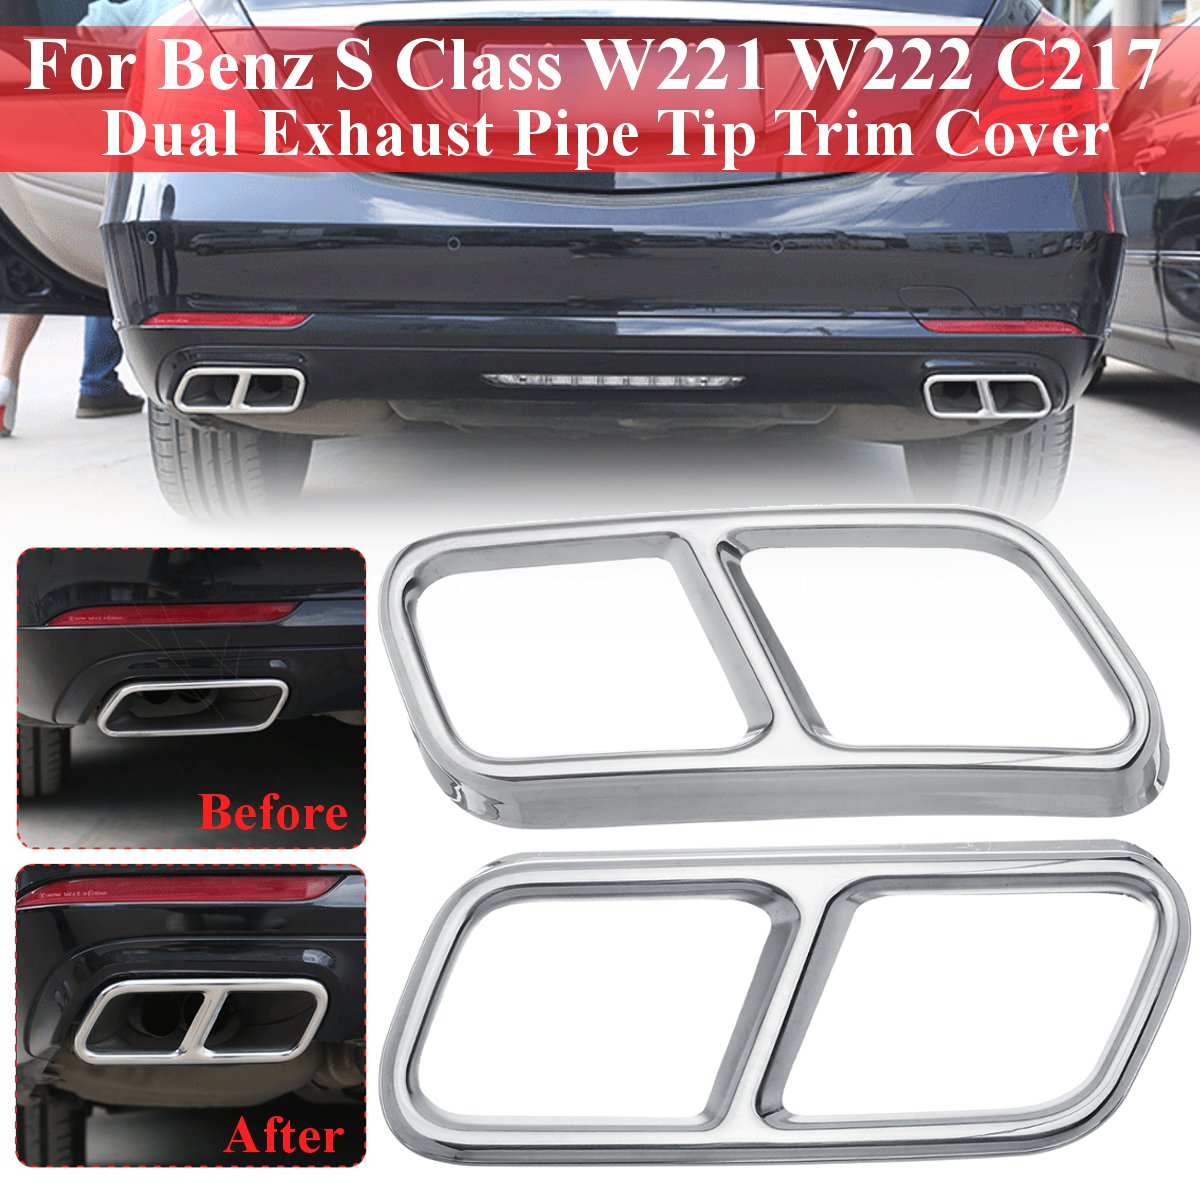 Exhaust End Pipe For Mercedes Benz S Class W221 W222 C217 Muffler Tip Trim Cover